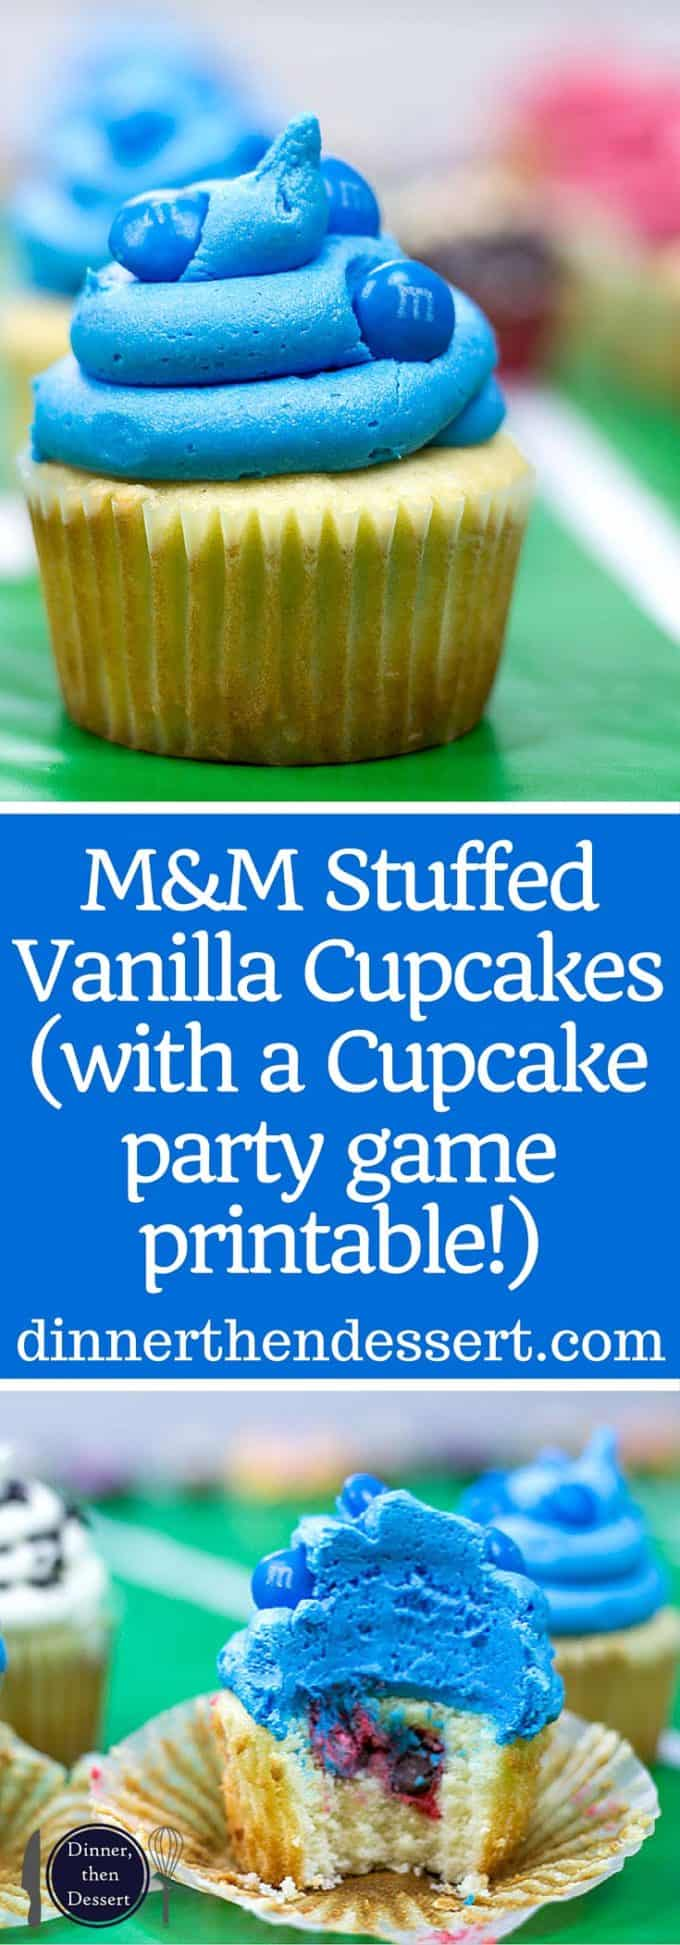 M&M's Stuffed Easy Vanilla Cupcakes with Vanilla Frosting and the stuffing makes for a fun party game for teams! (with a Super Bowl party game printable!)